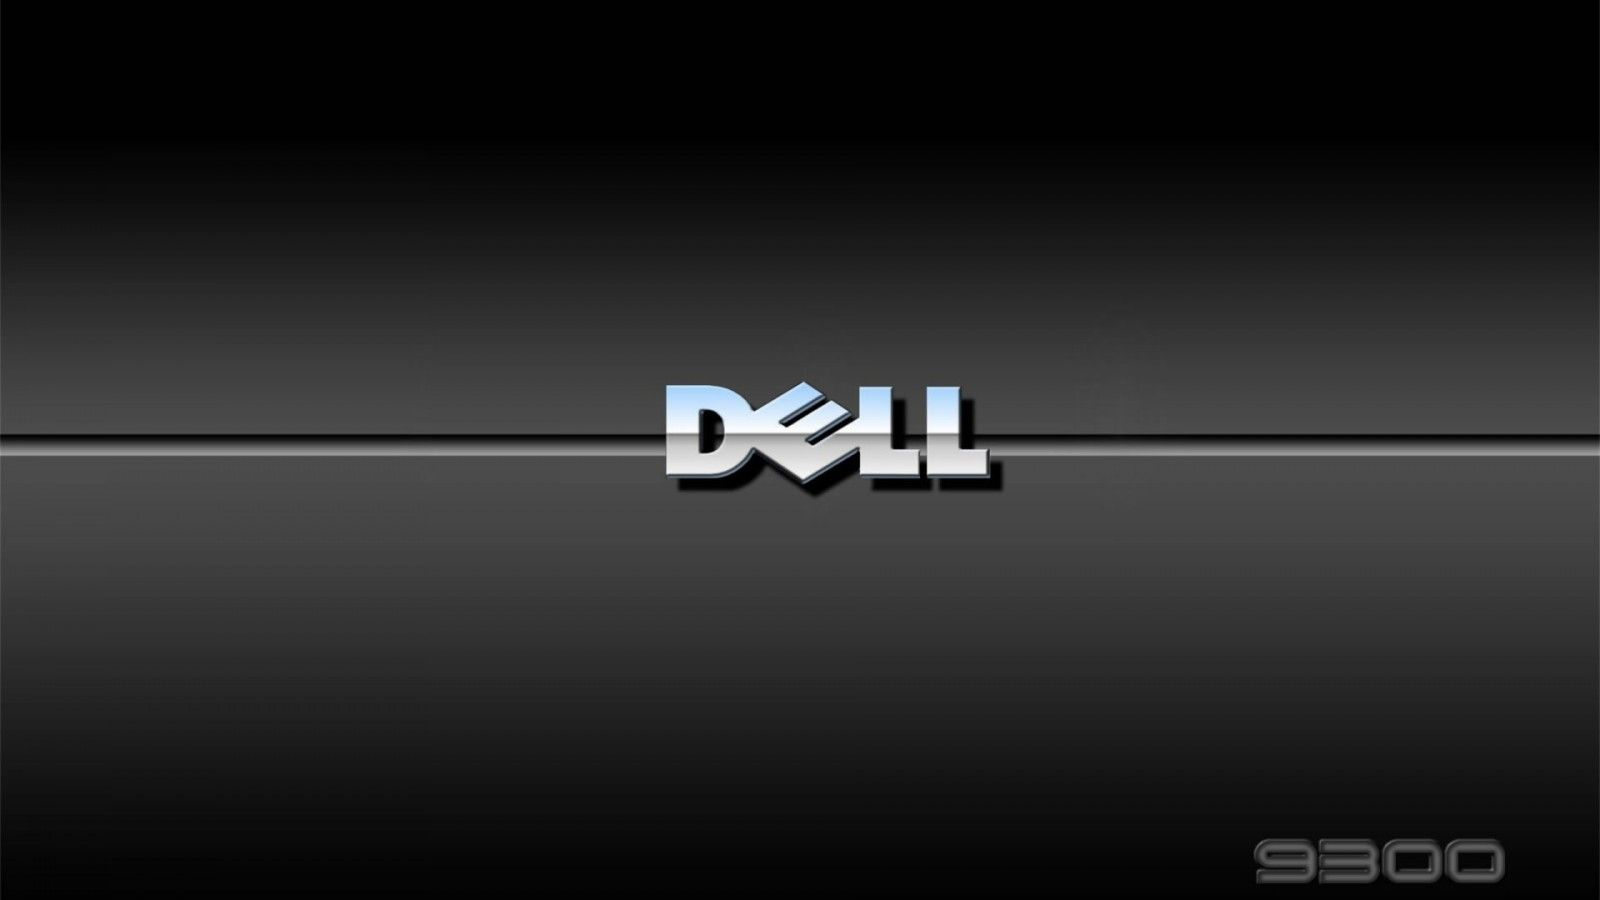 1600x900 Dell Backgrounds & Dell Wallpaper Images For Windows